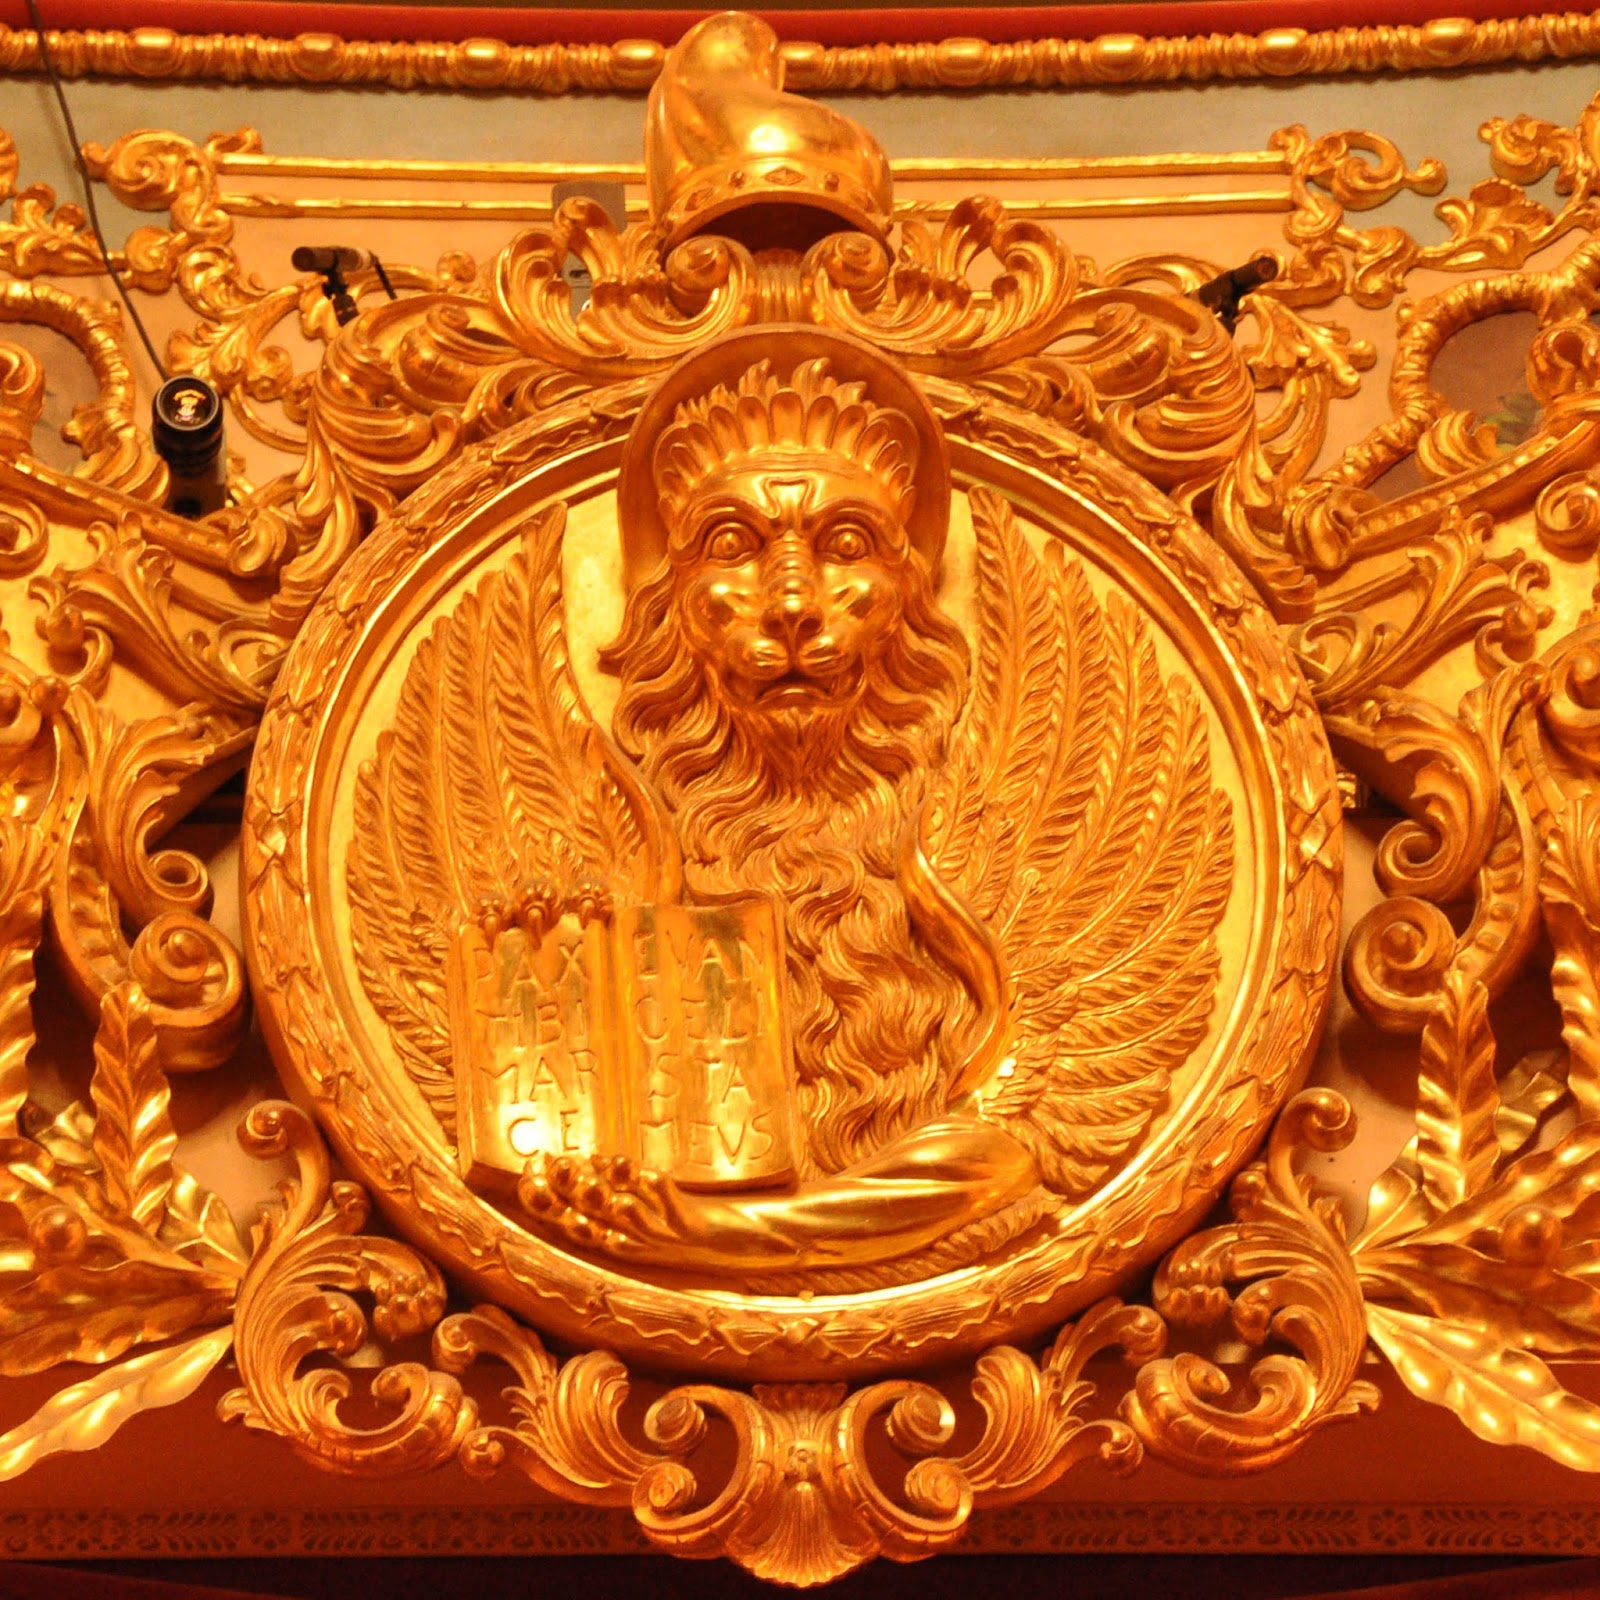 The lion above the Imperial box, La Fenice, Venice, Italy